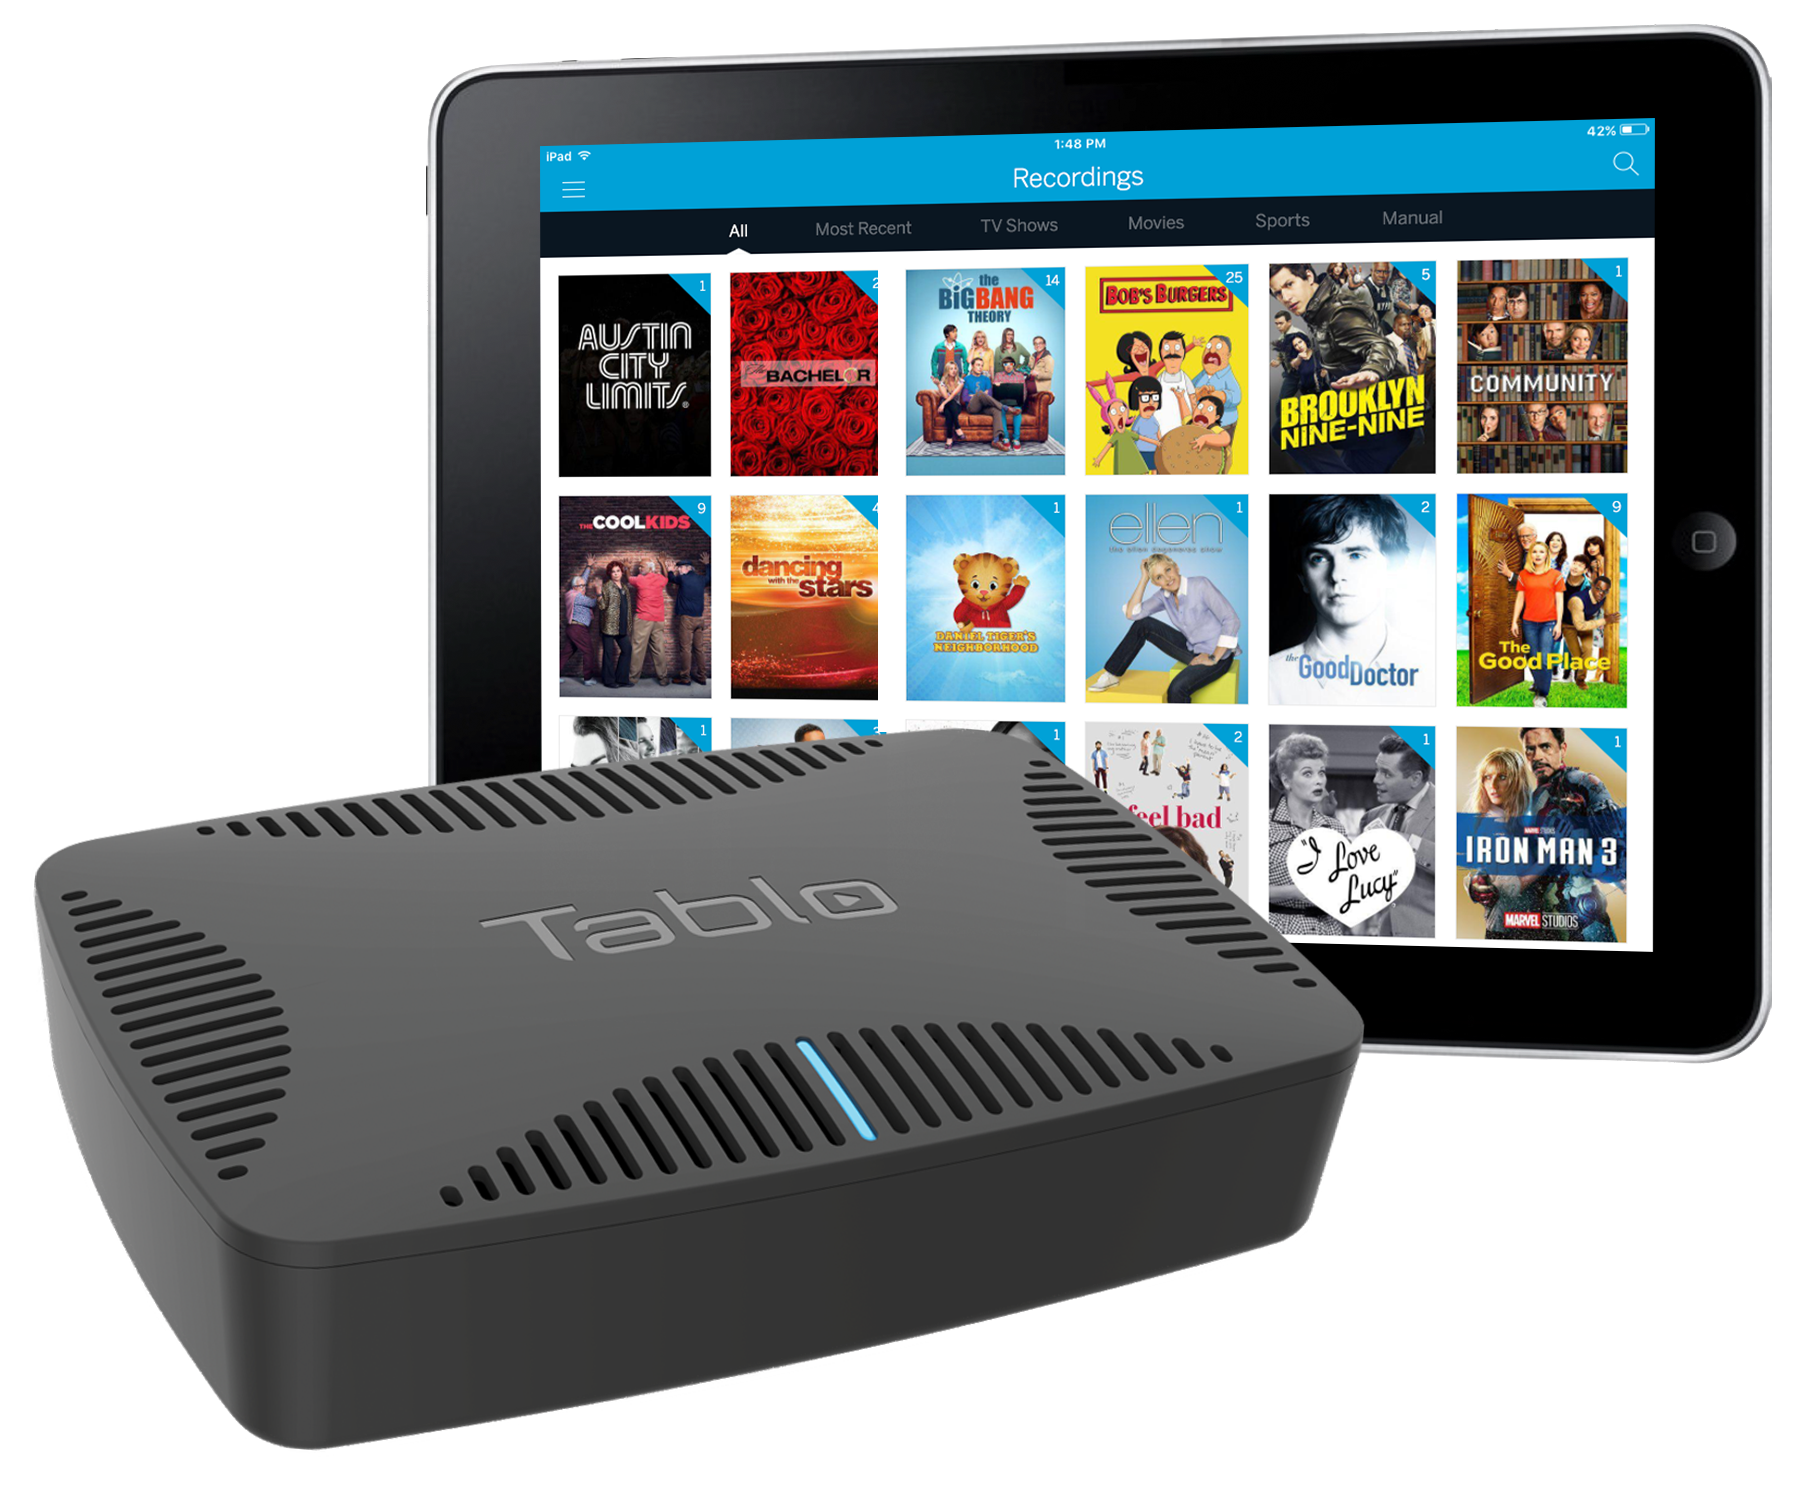 Tablo's new DVR for cord cutters skips the commercials for